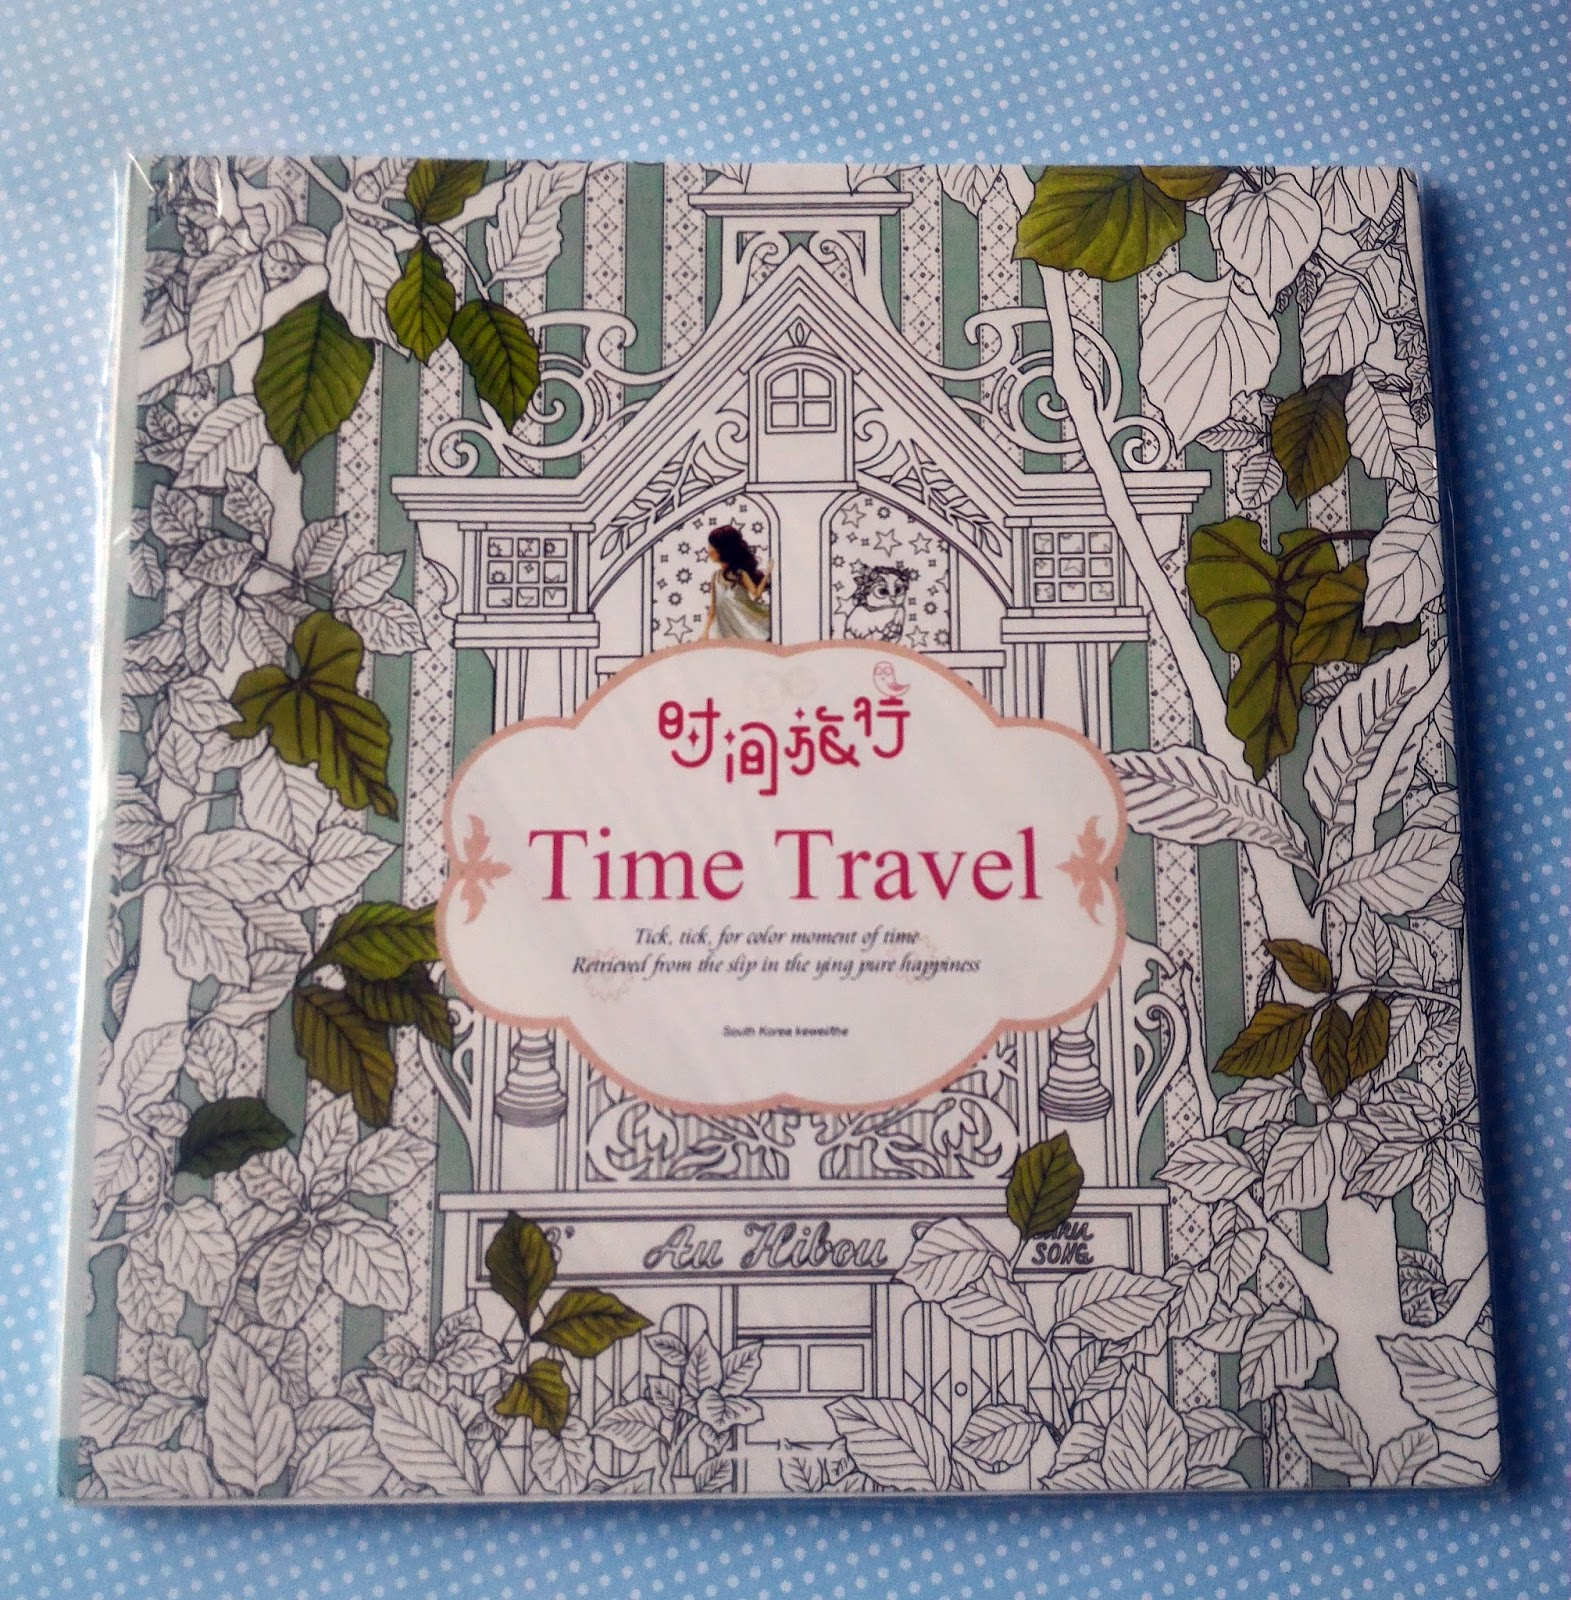 Coloring Book Time Travel, perna pernik, buku mewarnai untu dewasa